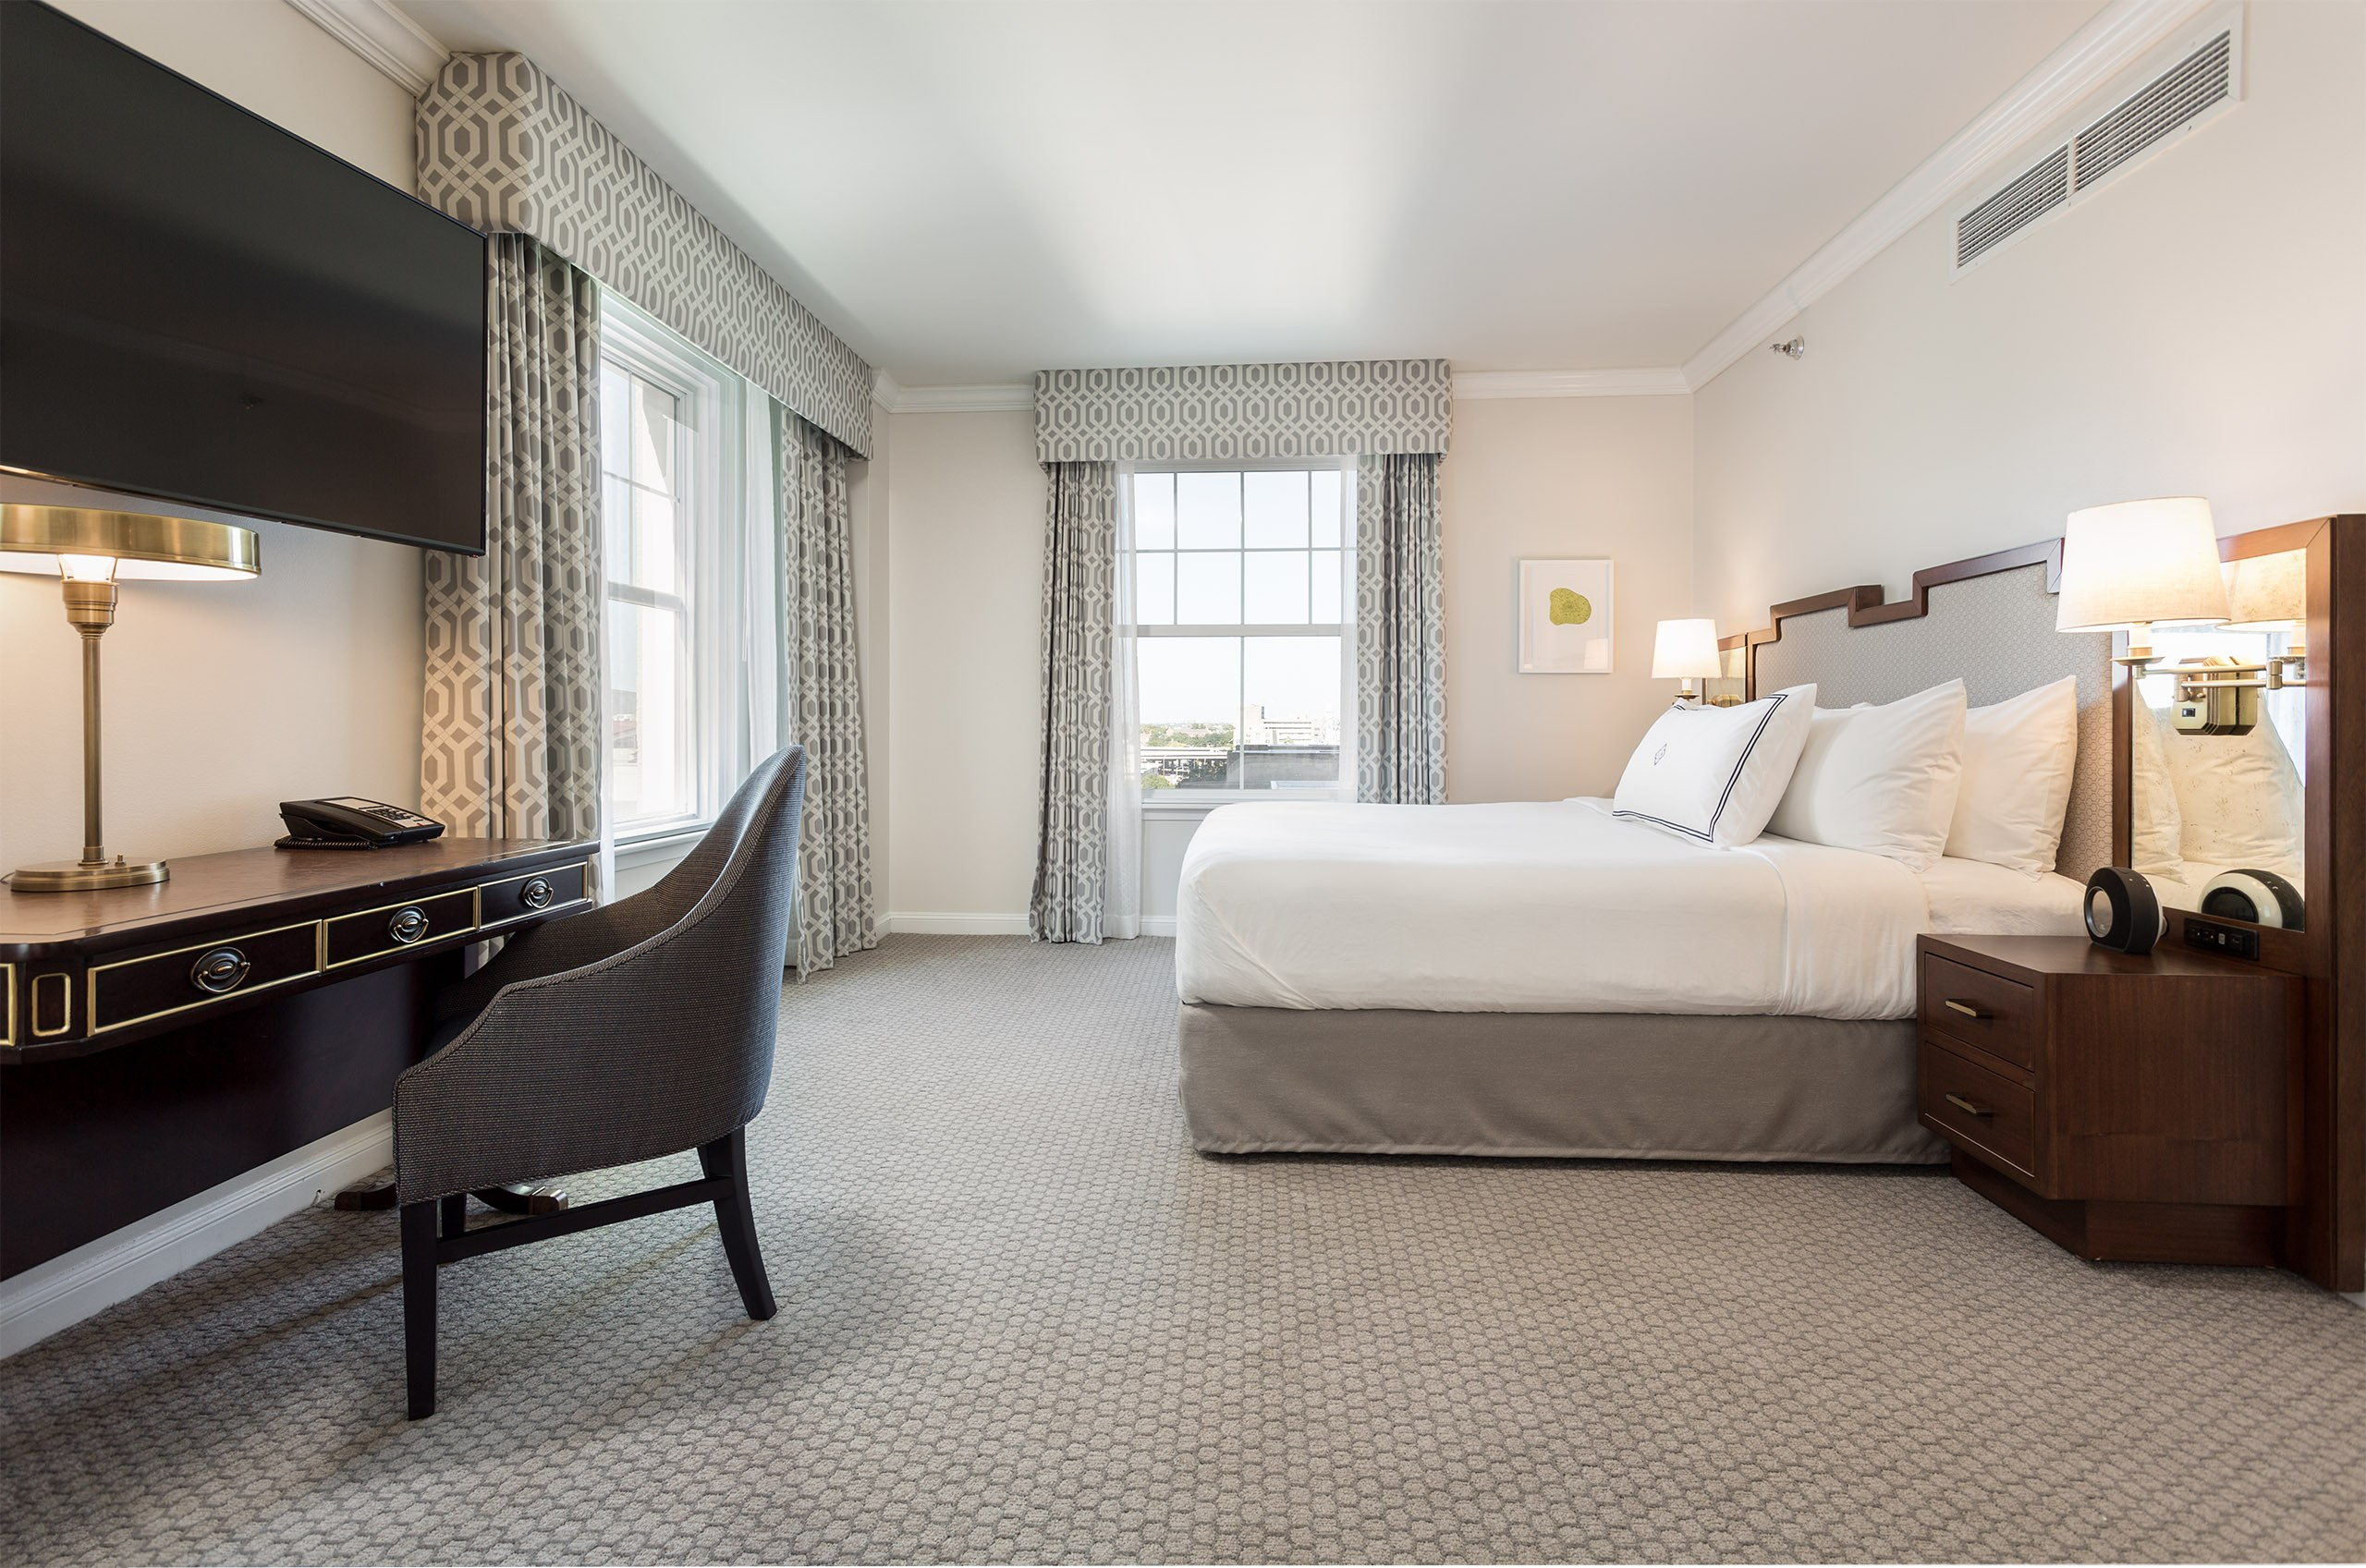 The Lancaster Hotel - Deluxe King Guestroom Overview